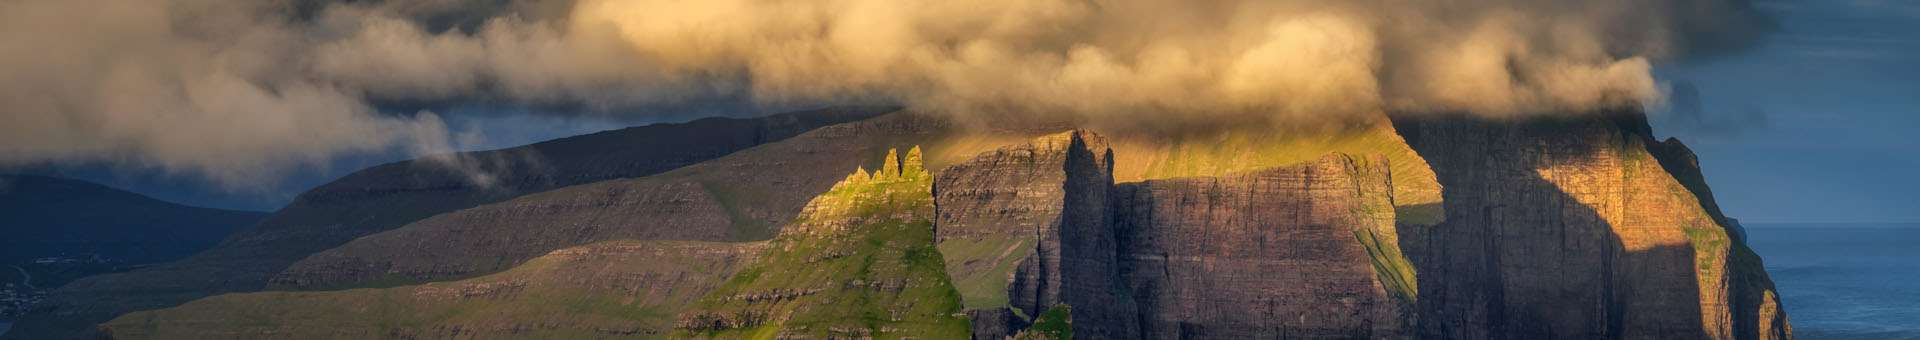 Search Whois information of domain names in Faroe Islands